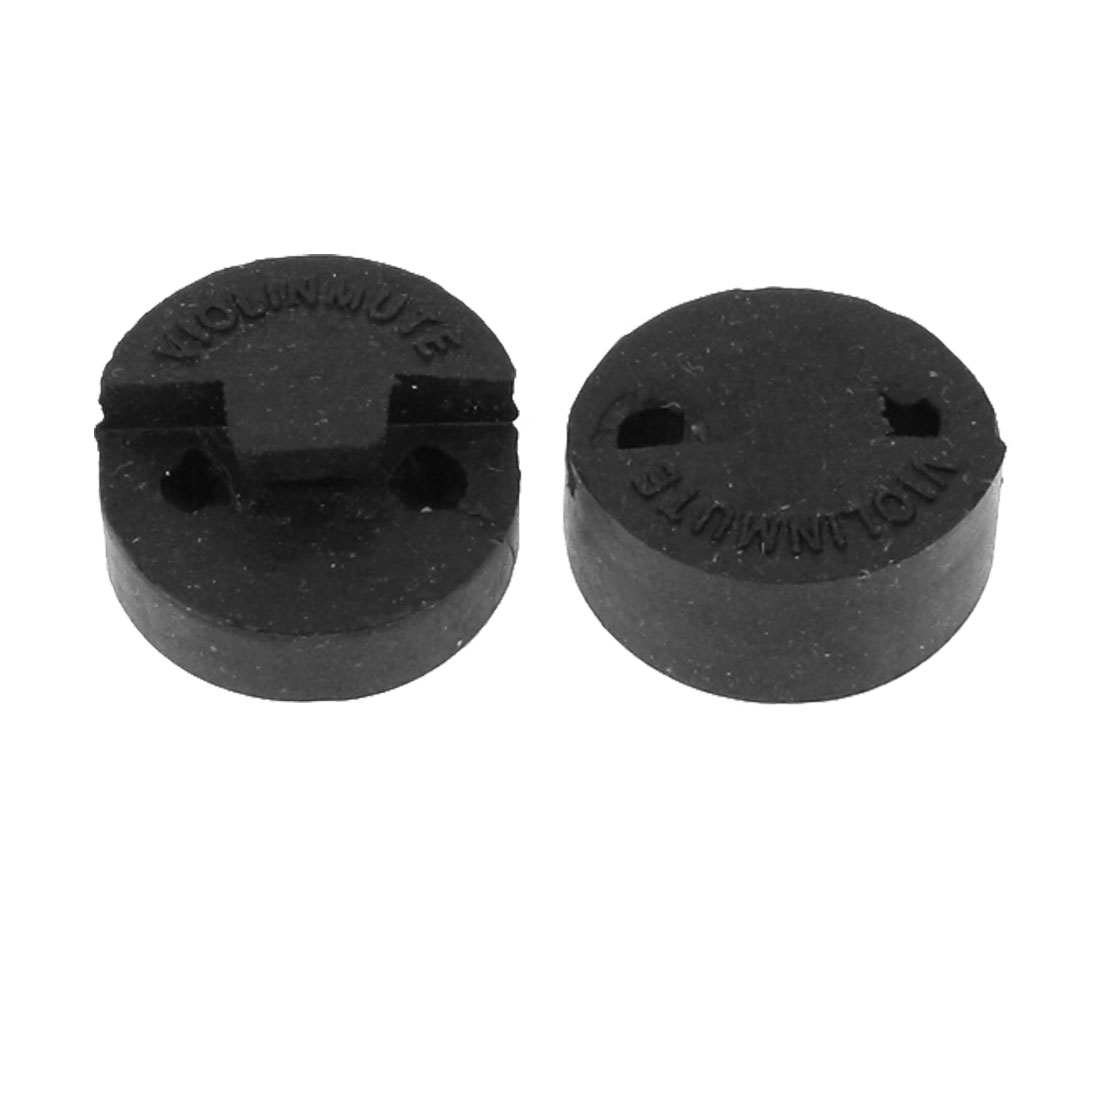 2pcs Violin Mute Replacing Part 2 Hole Tourte Black Rubber Sordine